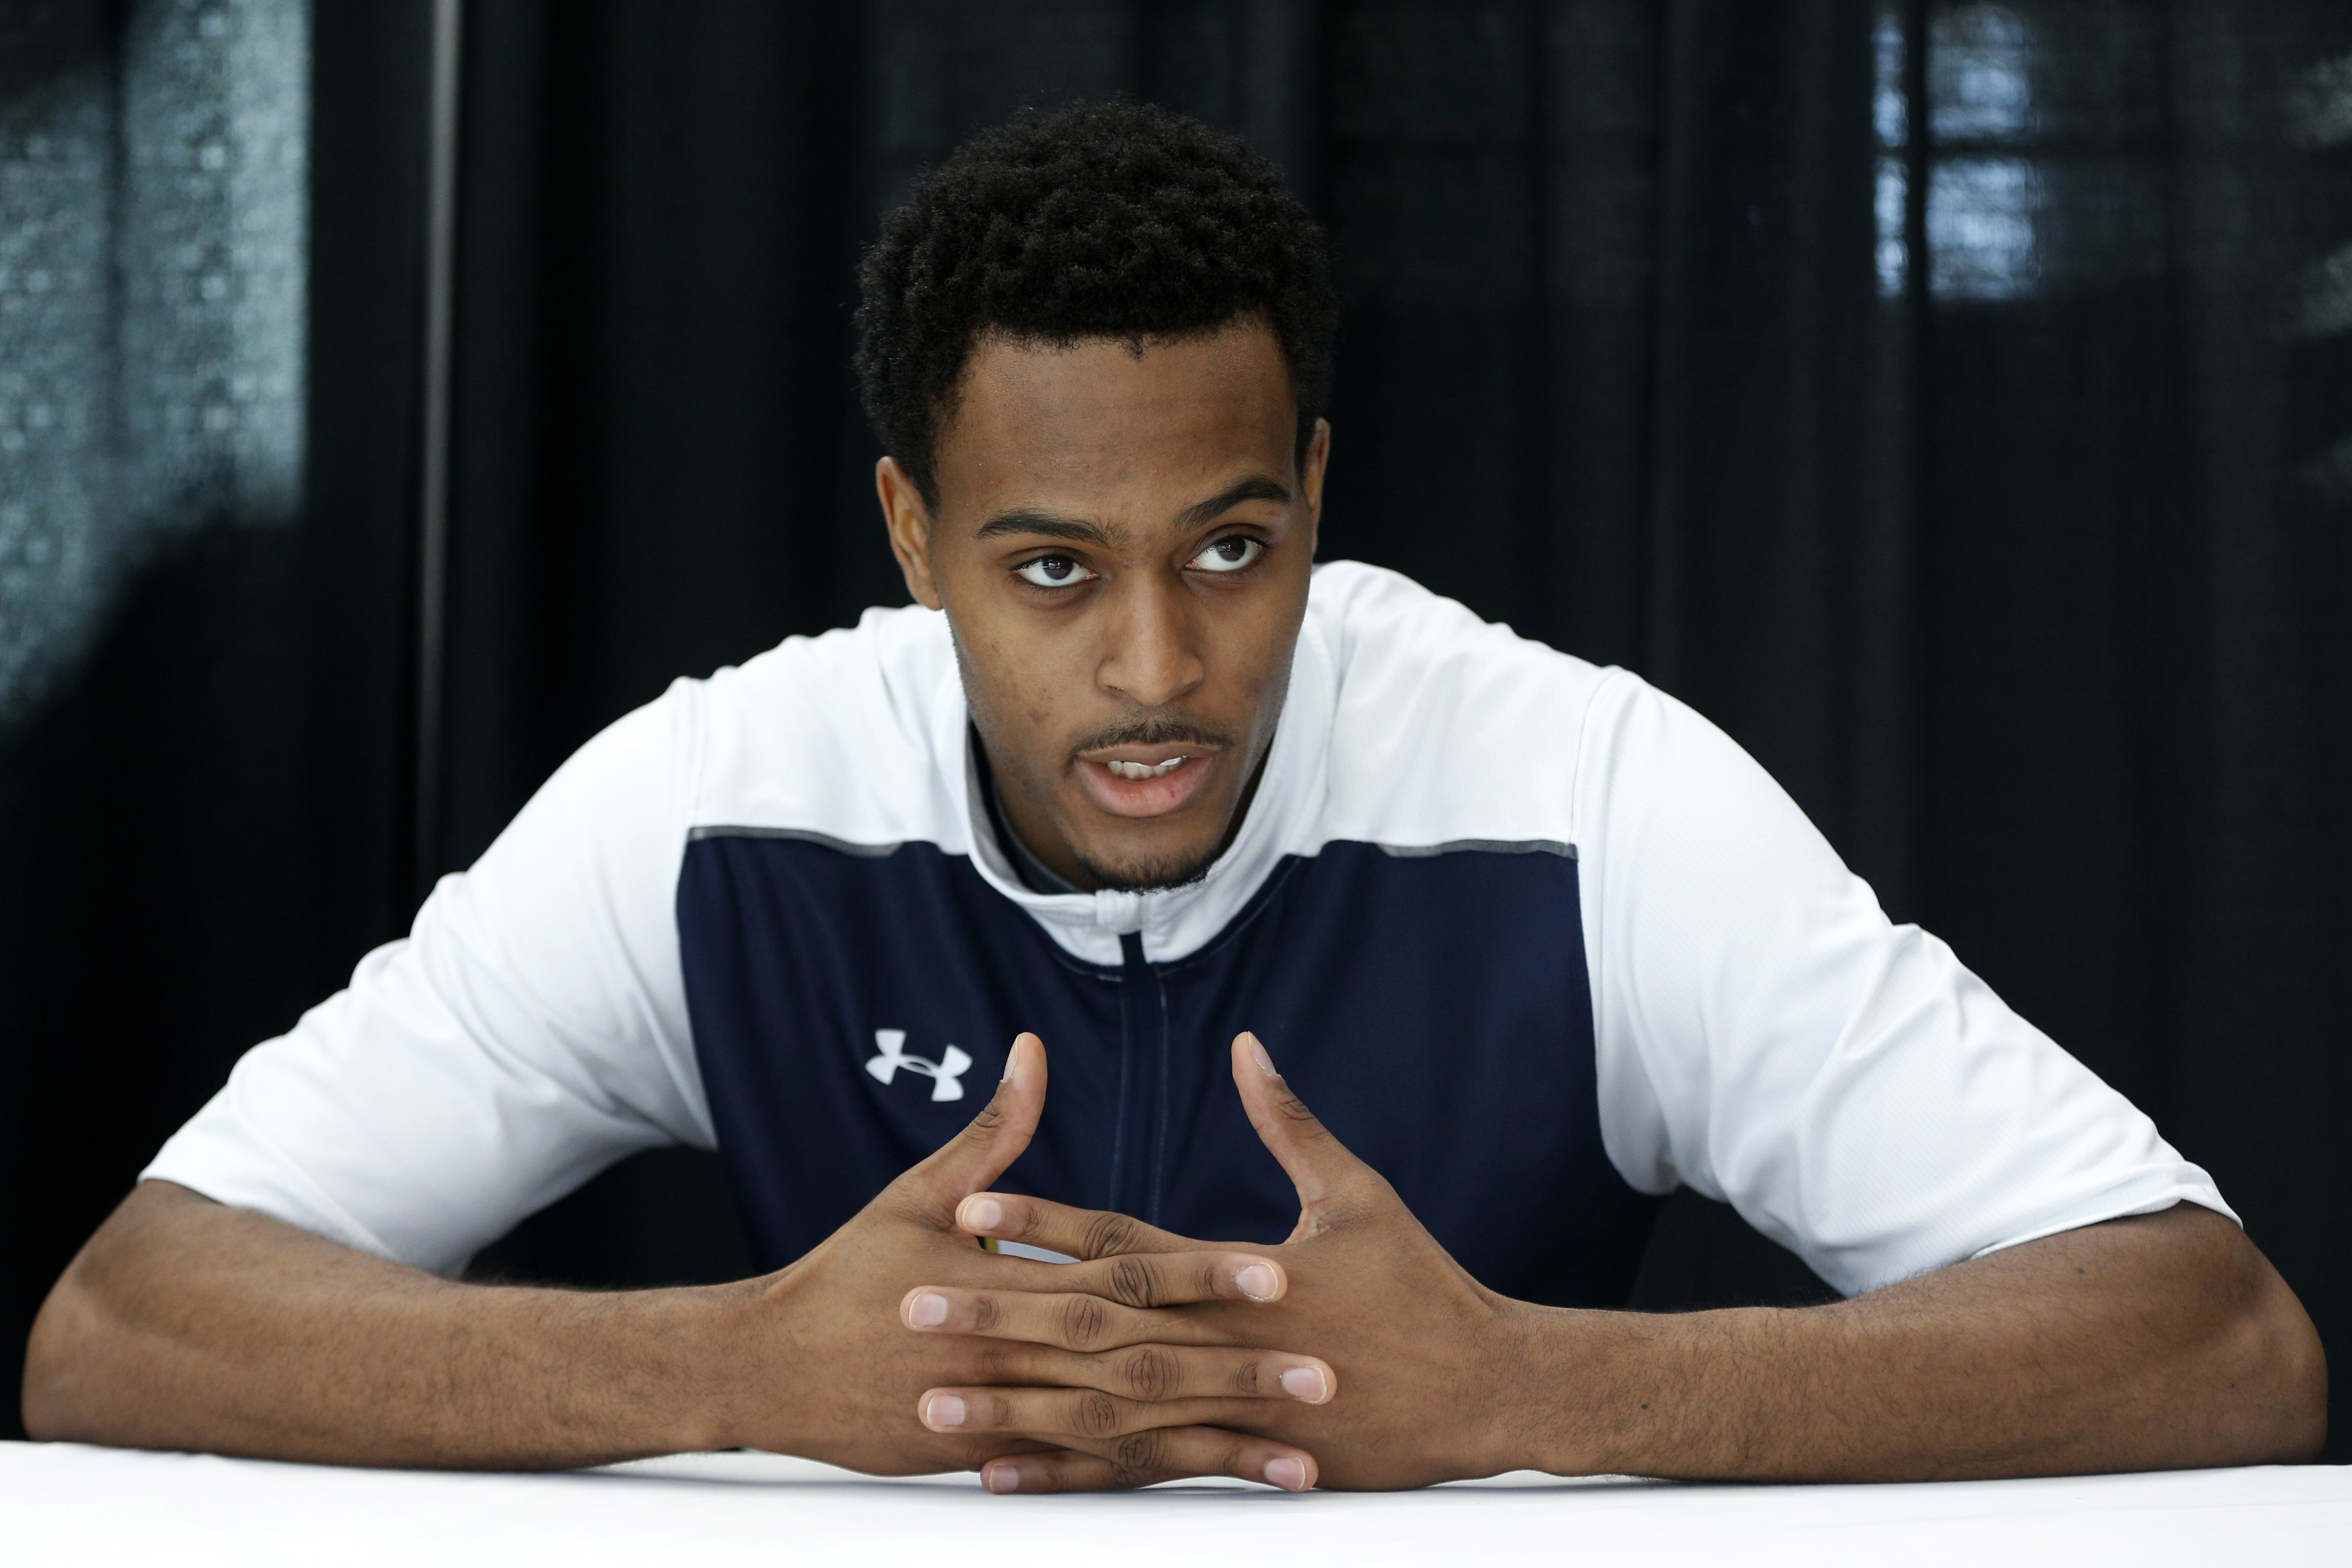 Notre Dame's V.J. Beachem speaks during a college basketball news conference, Saturday, March 26, 2016, in Philadelphia. Notre Dame will play North Carolina on Sunday in the regional finals of the men's NCAA Tournament. (AP Photo/Chris Szagola)